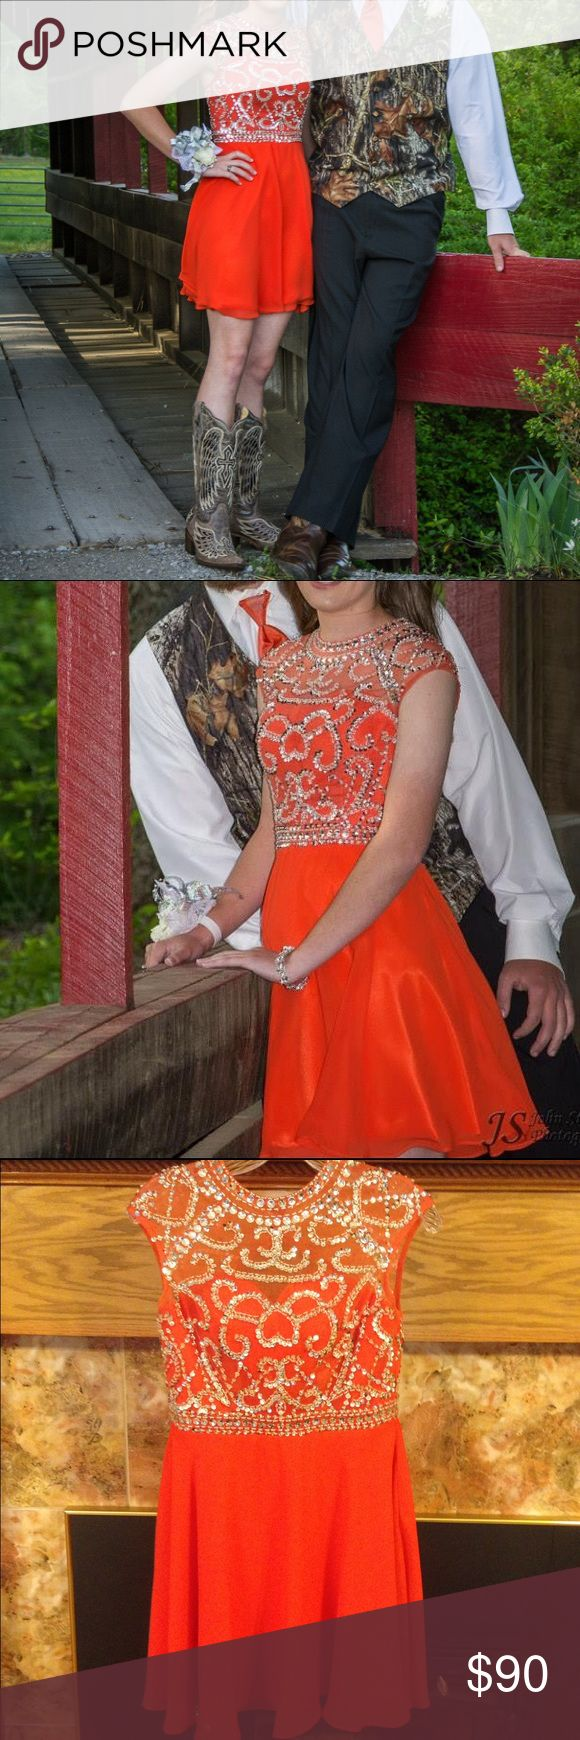 Orange Formal Dress Knee length orange chiffon formal dress. Zipper back. Fully lined. Mesh shoulders with beautiful silver beading and sequins. Excellent condition. Loving Dresses Dresses Prom